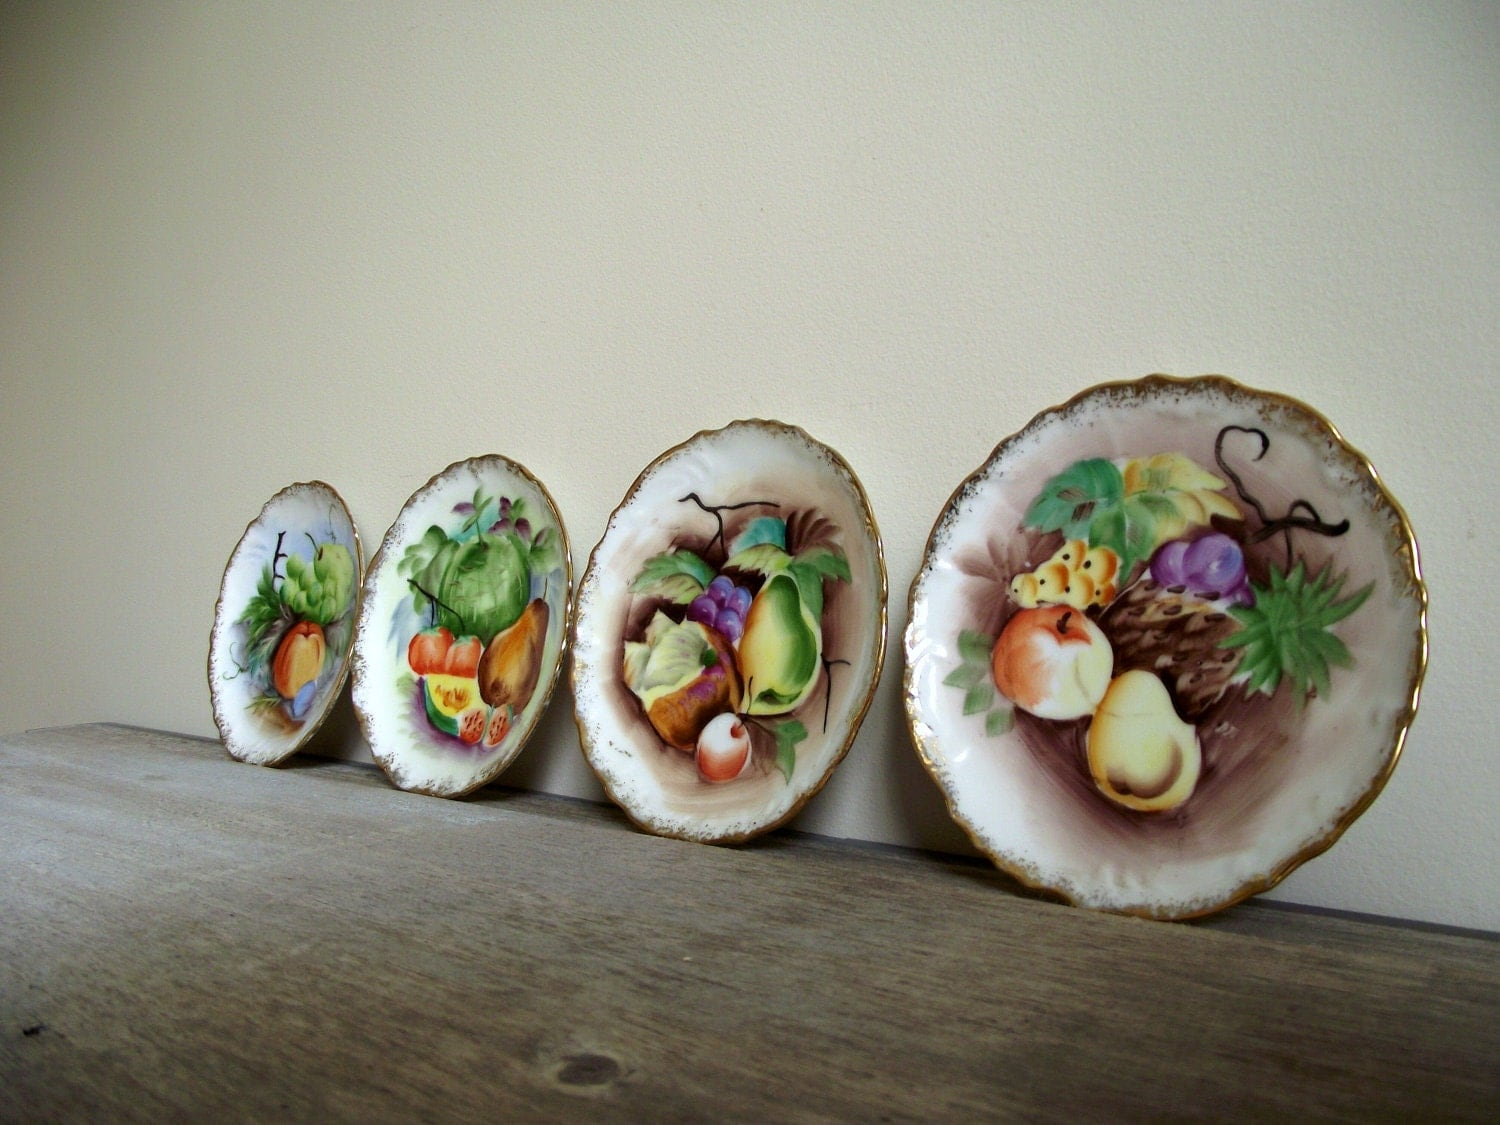 Decorative Wall Plates Set Of 4 : Decorative wall plates handpainted fruit set of four hanging